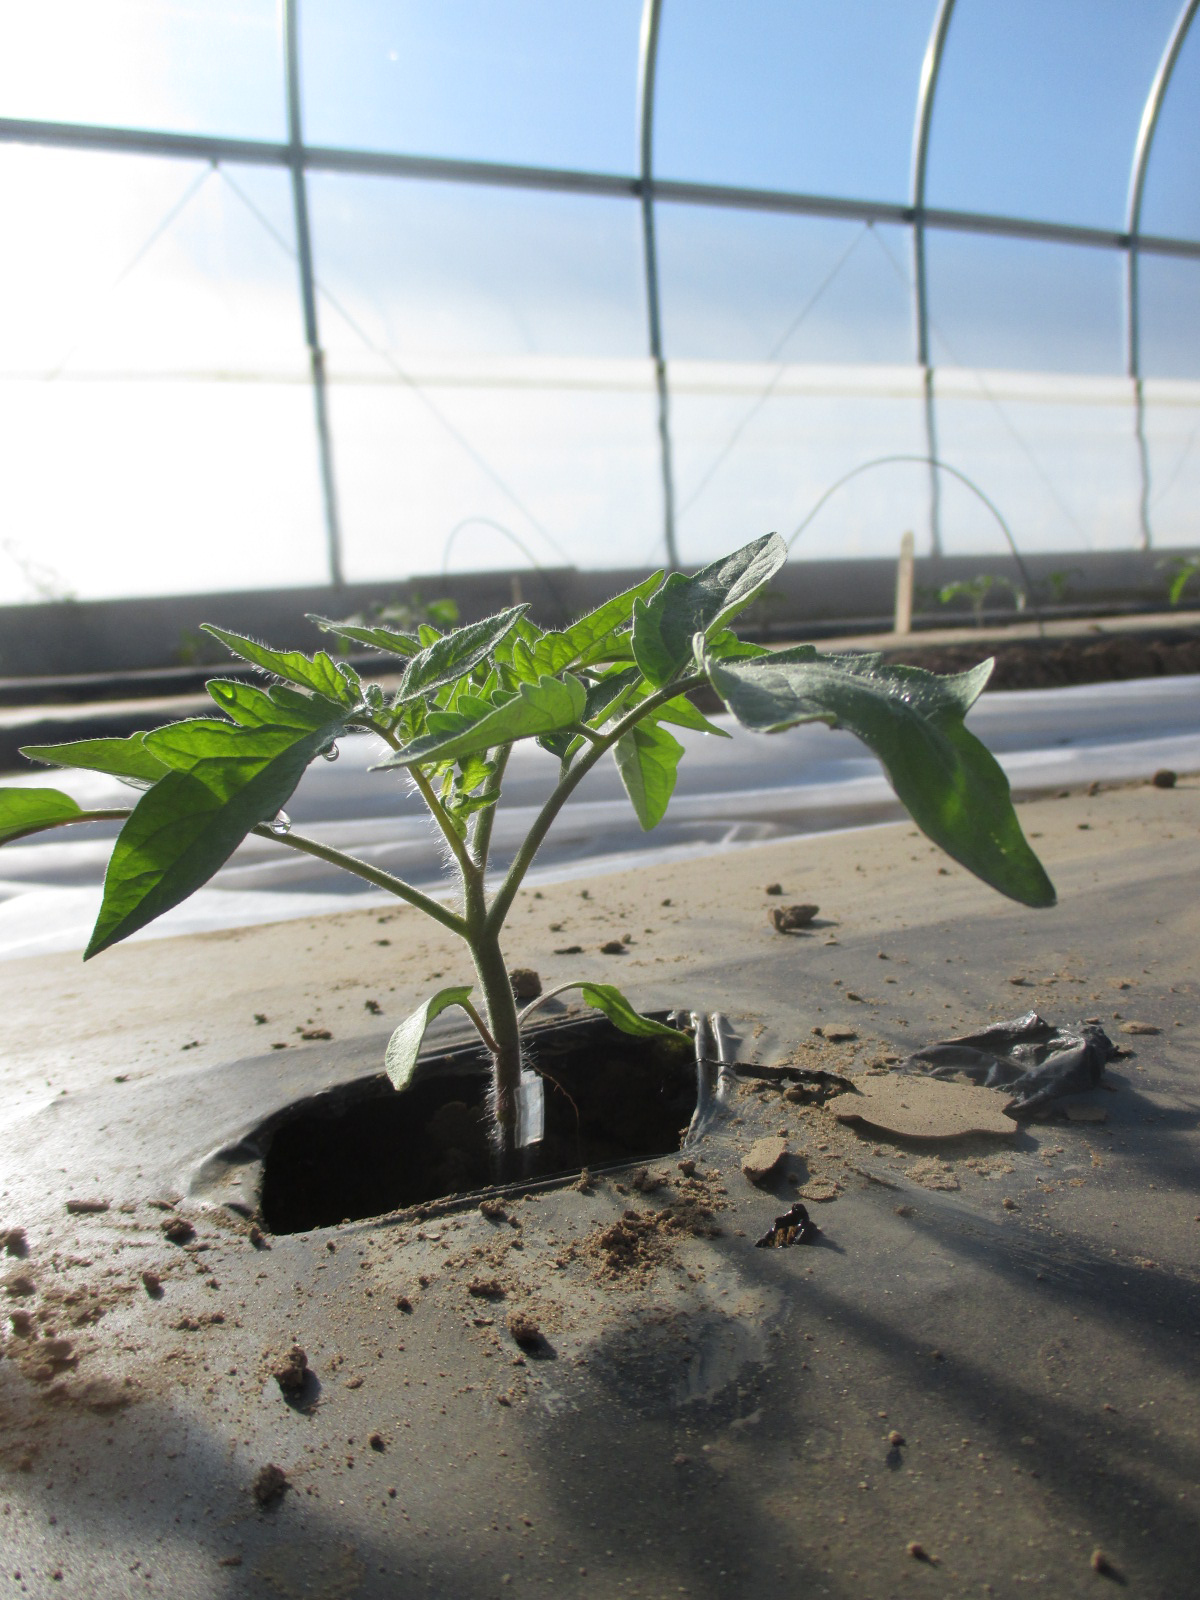 Purdue Extension Offers Tomato Grafting Workshops At SWPAC - Purdue University